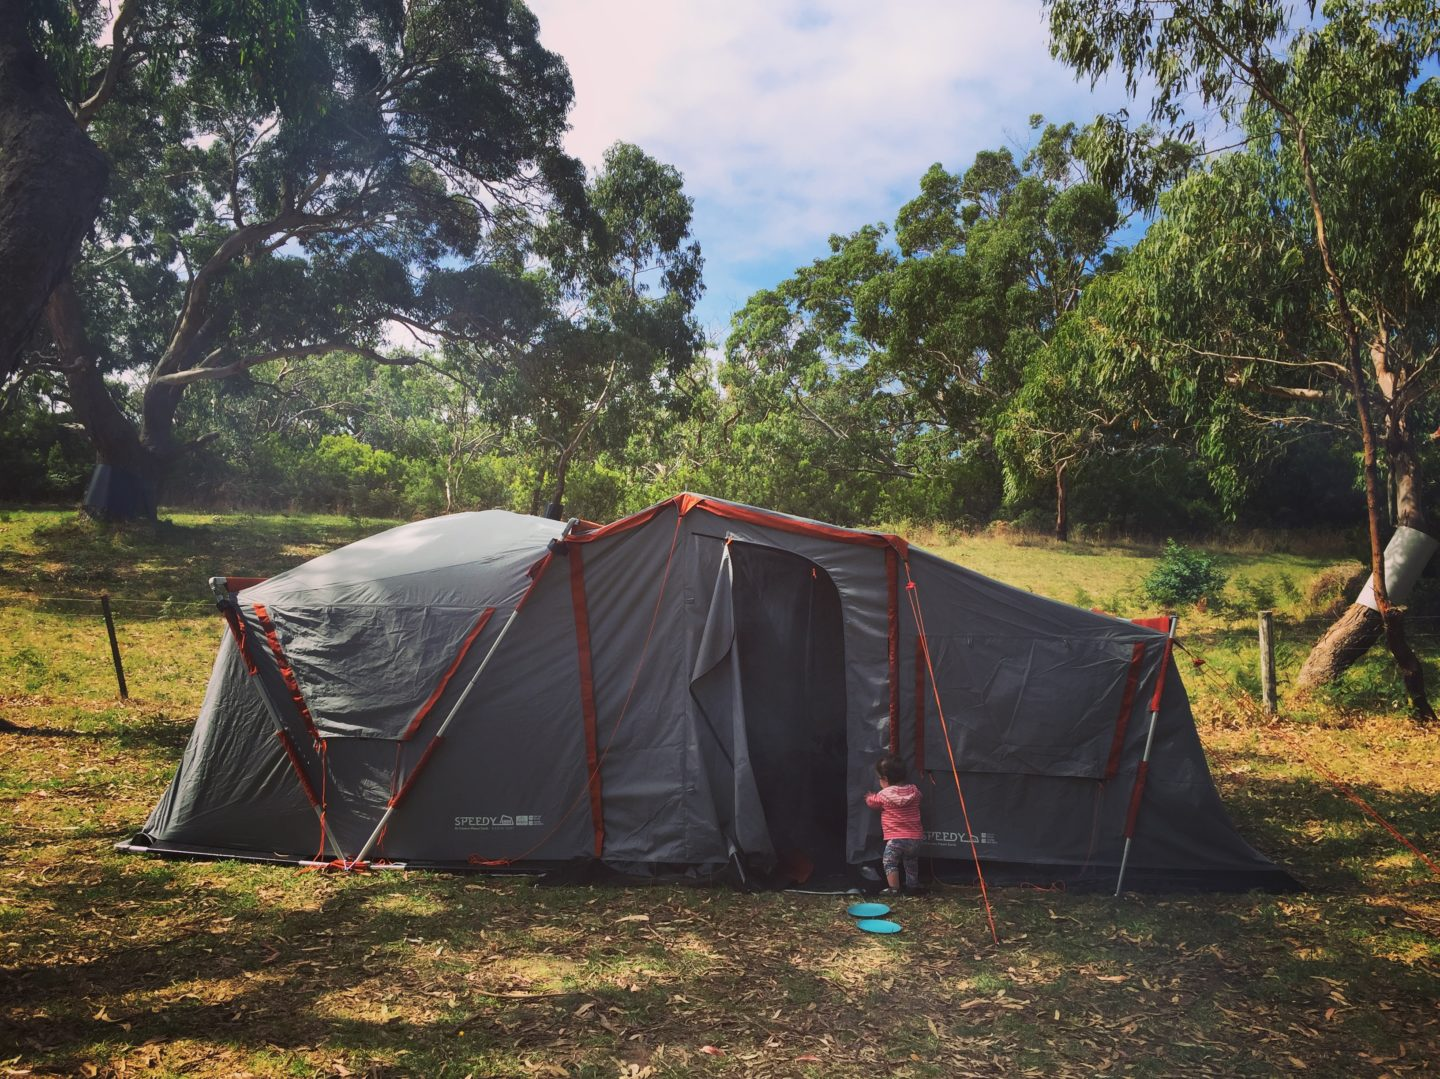 A weekend of camping (and some cooking ideas!)